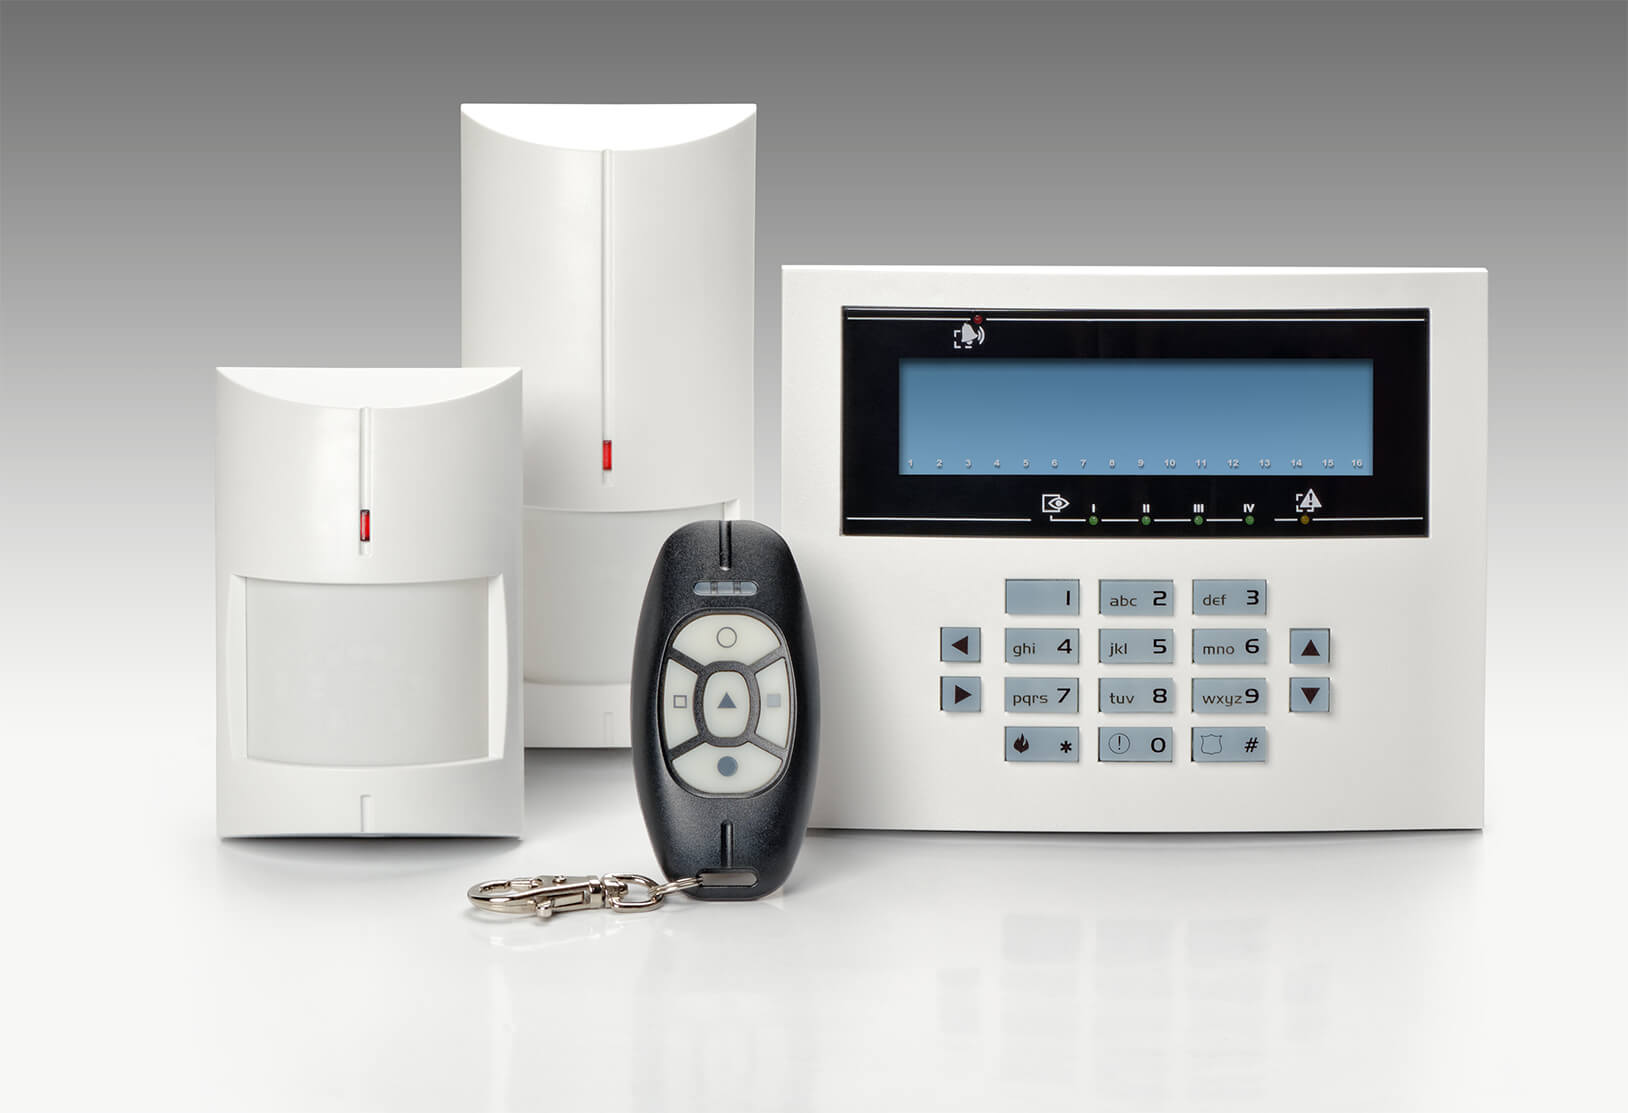 Business & Residential NSI / NACOSS Approved Burglar Alarms In Acton W4 - Local Acton W4 security company.Call 02078872244 - Dedicated to Safety & Security. Companies, shops and homes ..